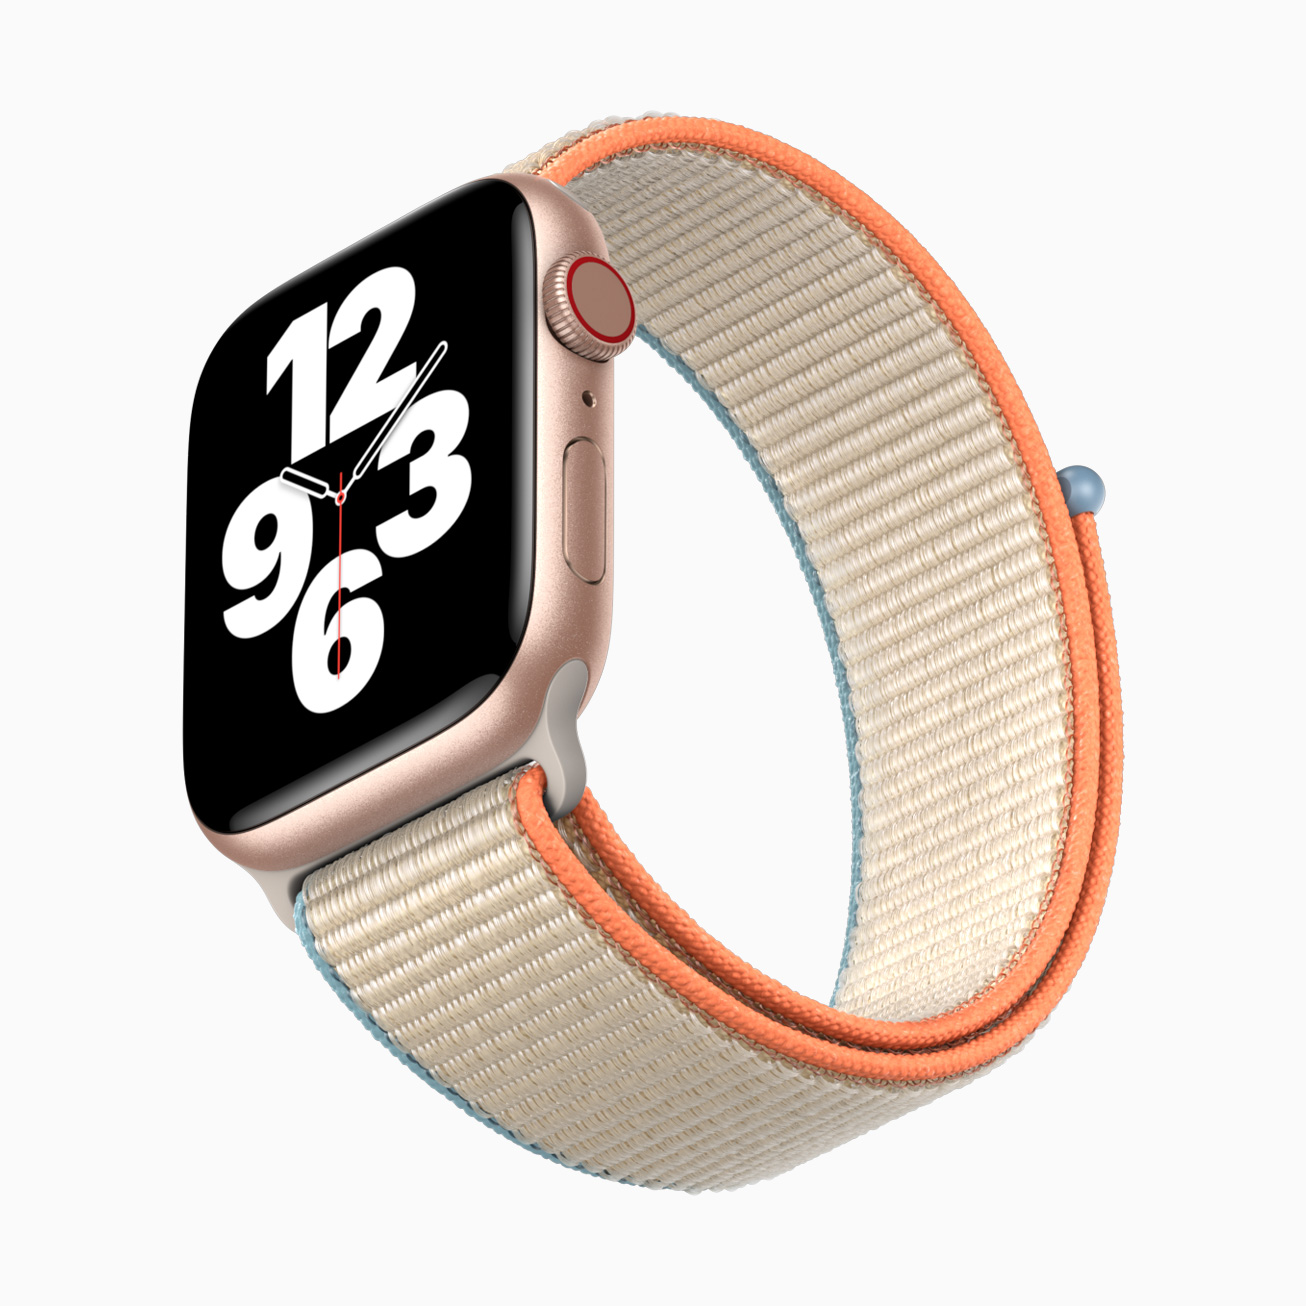 Apple watch-se-watchface 09152020 carousel.jpg.large 2x